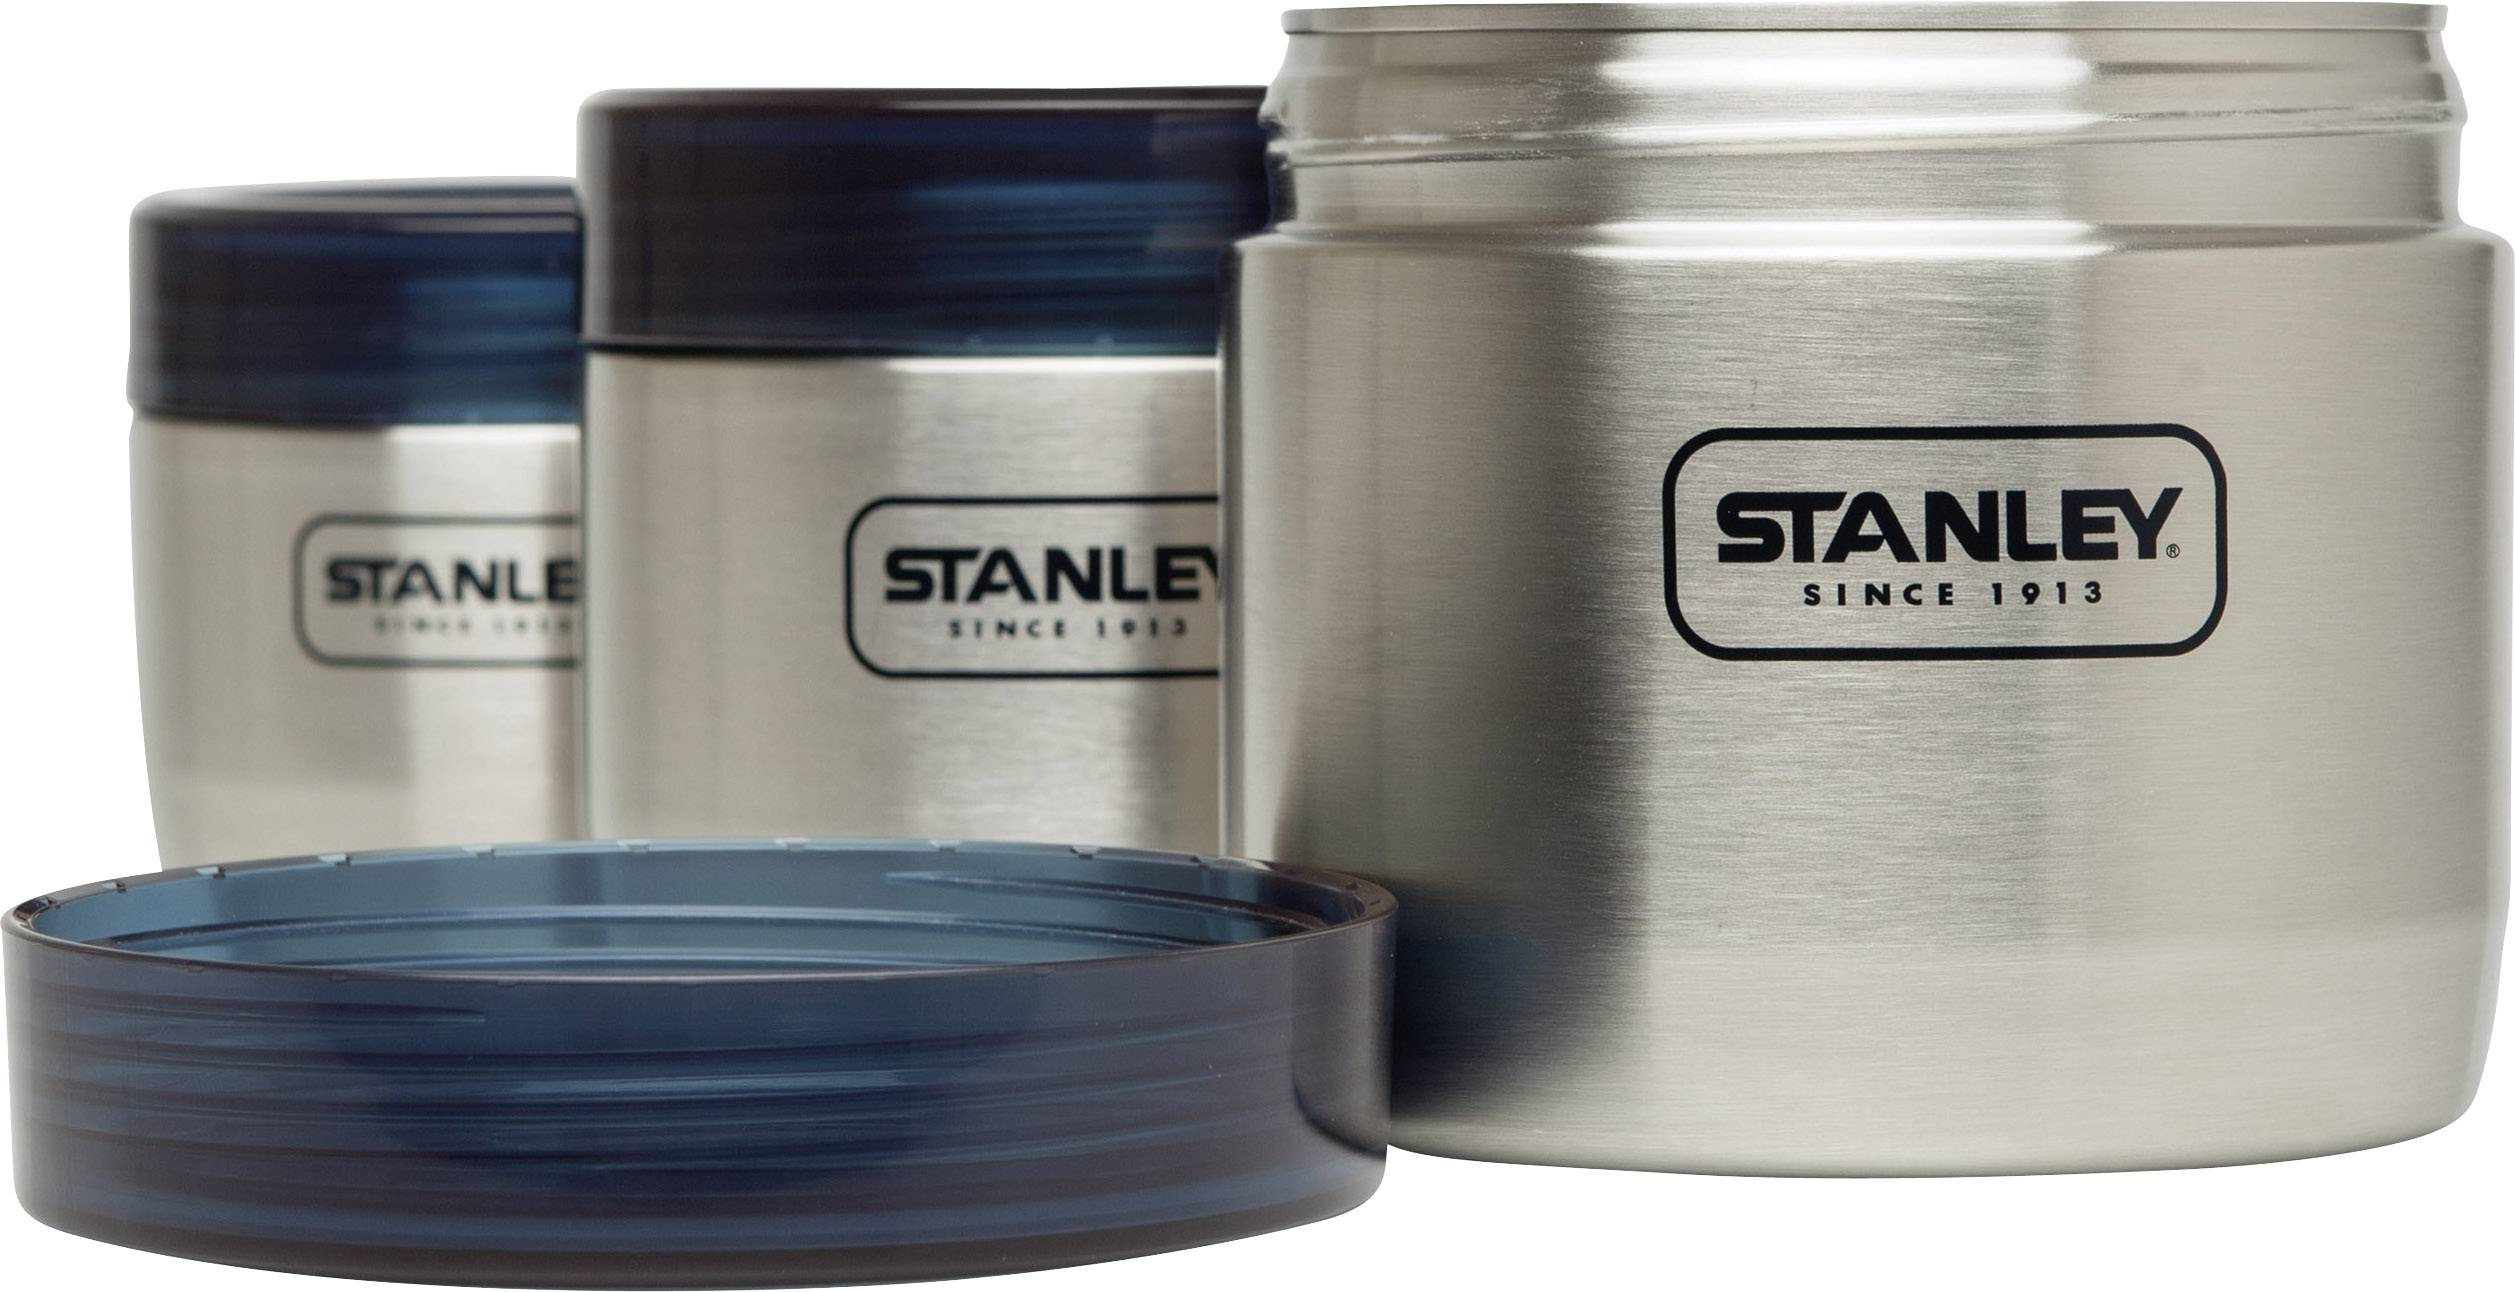 Outdoorküche Camping Club : Stanley camping speisebehälter adventure steel canister st